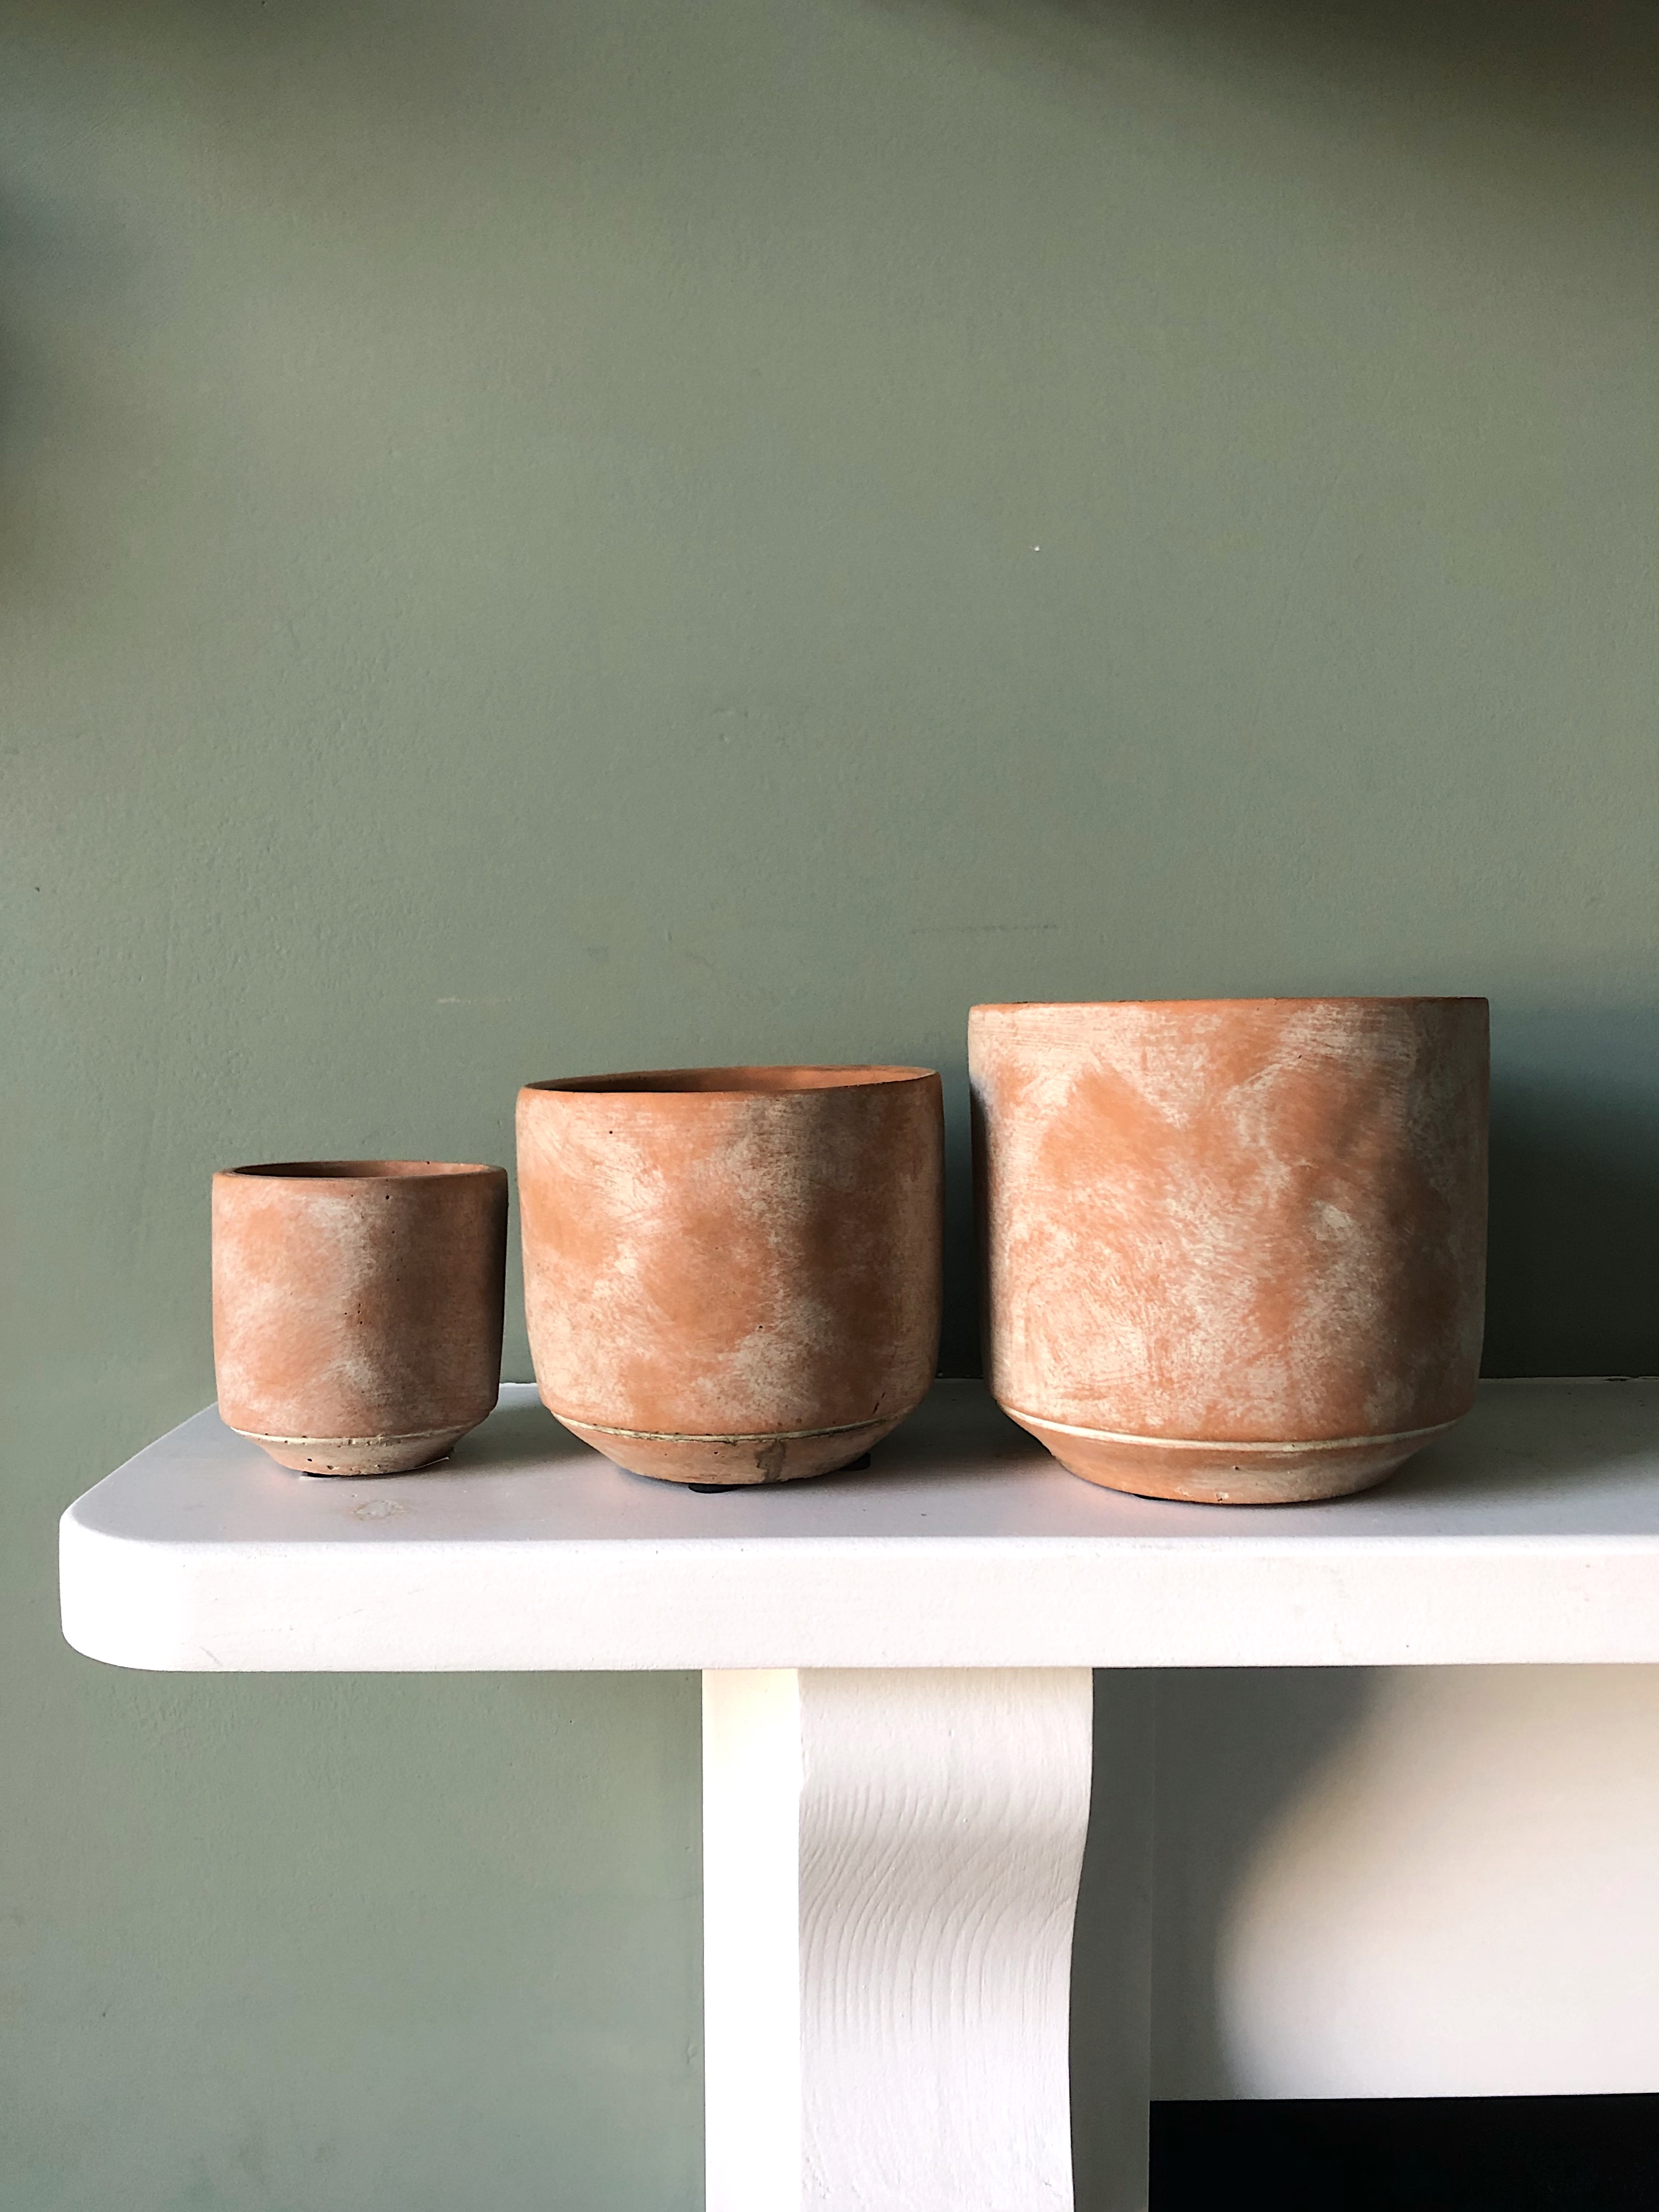 Three ceramic Saar pots